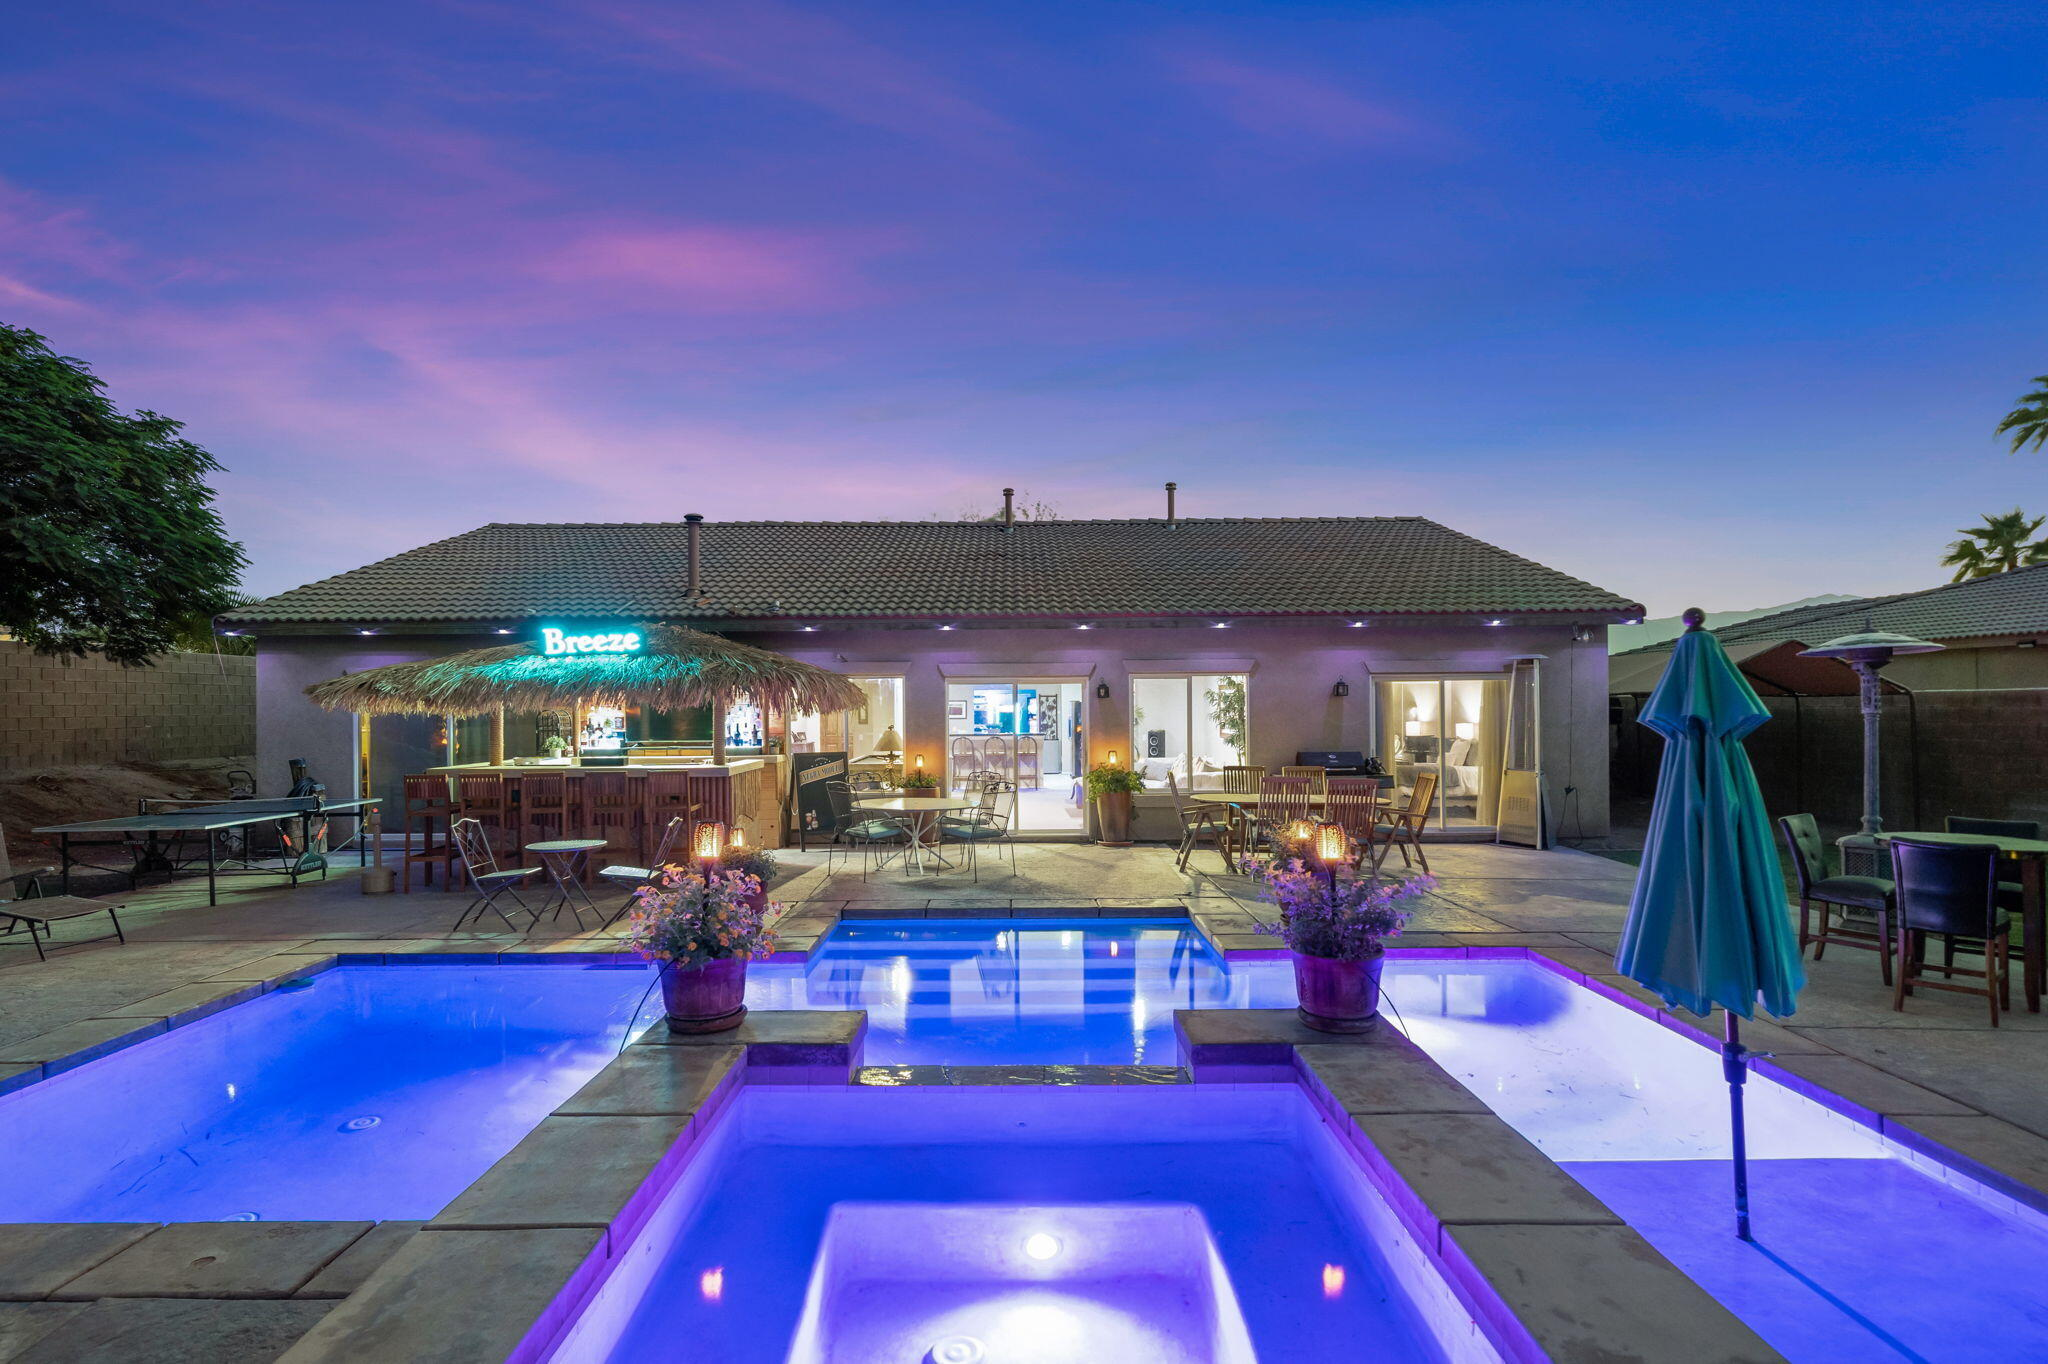 One of a Kind Pool Home on a Quiet Street inside Indio's Shadow Hills with Low HOA's, Casita, Gated RV Parking and the biggest and best lot in the area! The Breathtaking Backyard, 50% larger than others in the area, Compliments the 5 Bedrooms, 3 Baths, Casita home with Bonus Room and RV and/or Boat Parking.  This is Your Very Own Private Mini-Estate Retreat. There may not be a better home for entertaining in the entire Coachella Valley. No matter what type of toys, boats, bikes you may have, you'll have room for them here. The detail that has been put into the backyard amenities of this home are second to none! There is an enormous custom bar with television and neon signage which would be the focal point of any evening gathering, must be seen to appreciate! The Nighttime Ambiance of this well appointed Home would be the pride of any host. The Master Suite is located at opposite end of the Home from the other Bedrooms for privacy and the Casita is completely private with a dedicated entrance.  Don't miss out on this unique property for your most discerning buyers. There are  other pool homes with a casita in Indio but this type of backyard, Gated RV parking and almost half a fully developed acre inside a gated community is exceptionally rare. The entire backyard is landscaped, the grass is in and it is ready to be played on. Don't wait, come see this incredible unique resort mini estate today